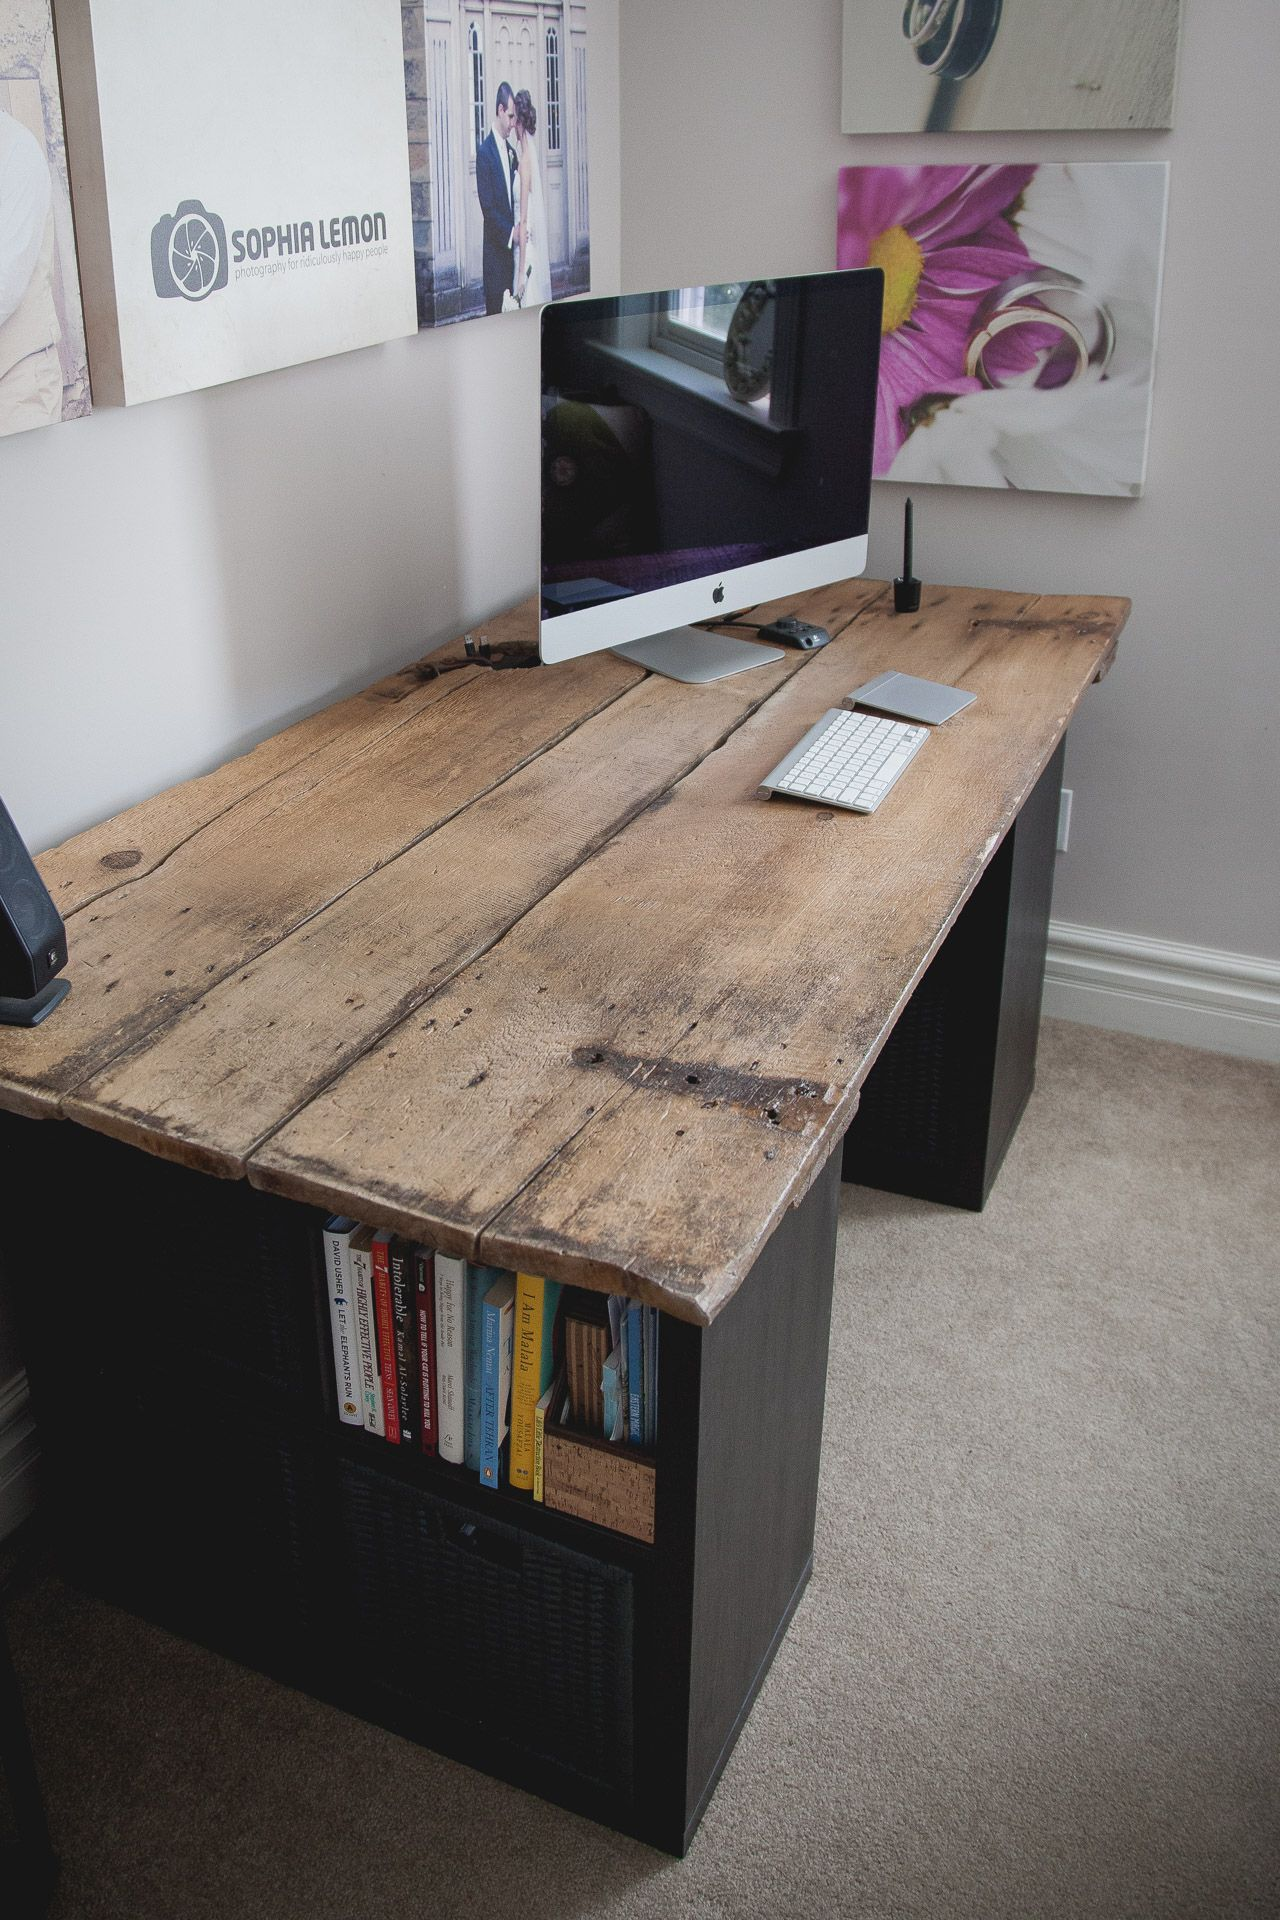 Elegant I Built This Desk Out Of A Year Old Wood Door From My Barn And IKEA  Shelves. I Cleaned It And Finished It With Clear Coat. Very Little Work And  An Awesome ...